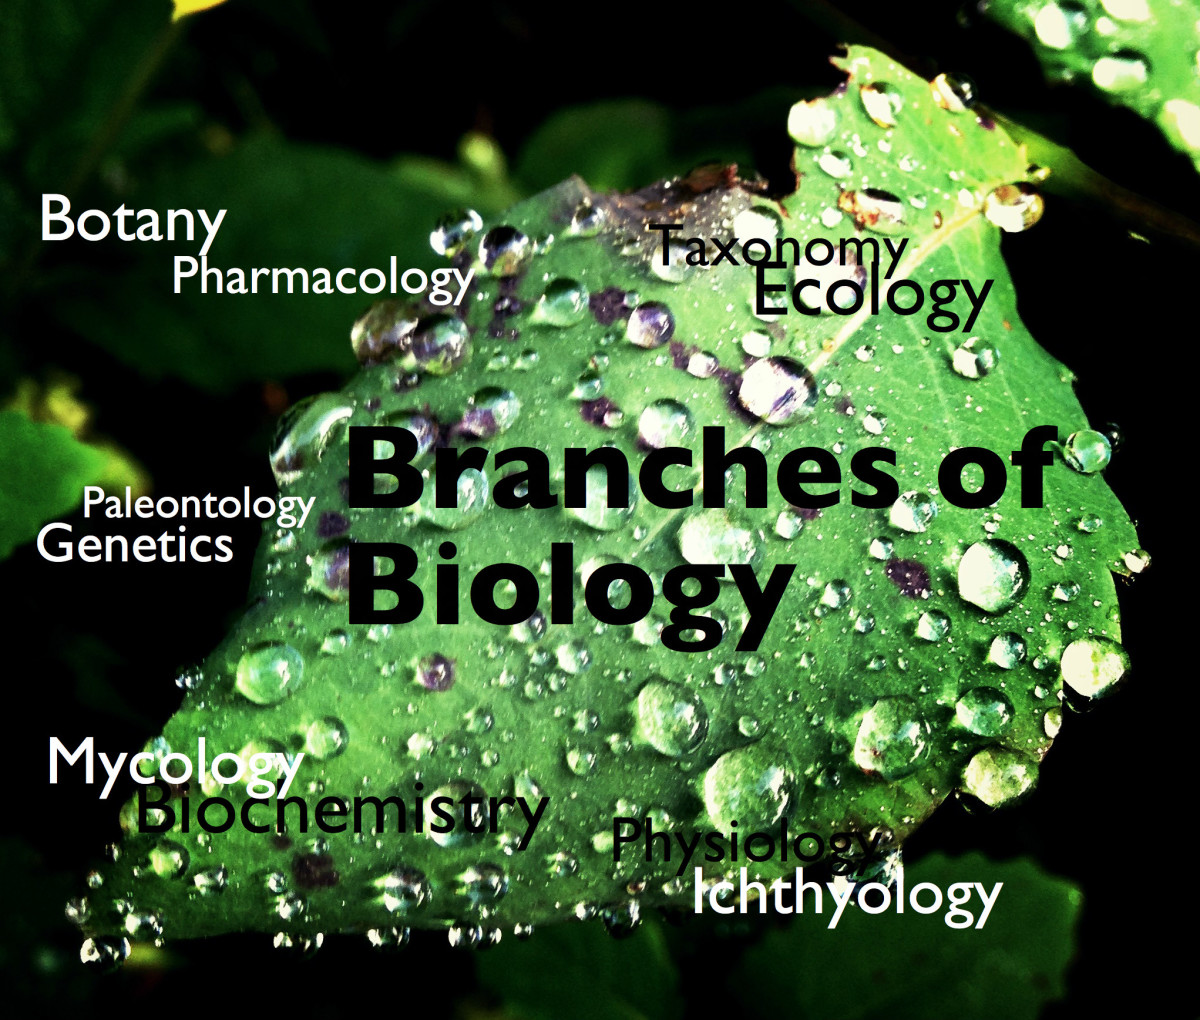 Biology is the study of living organisms.